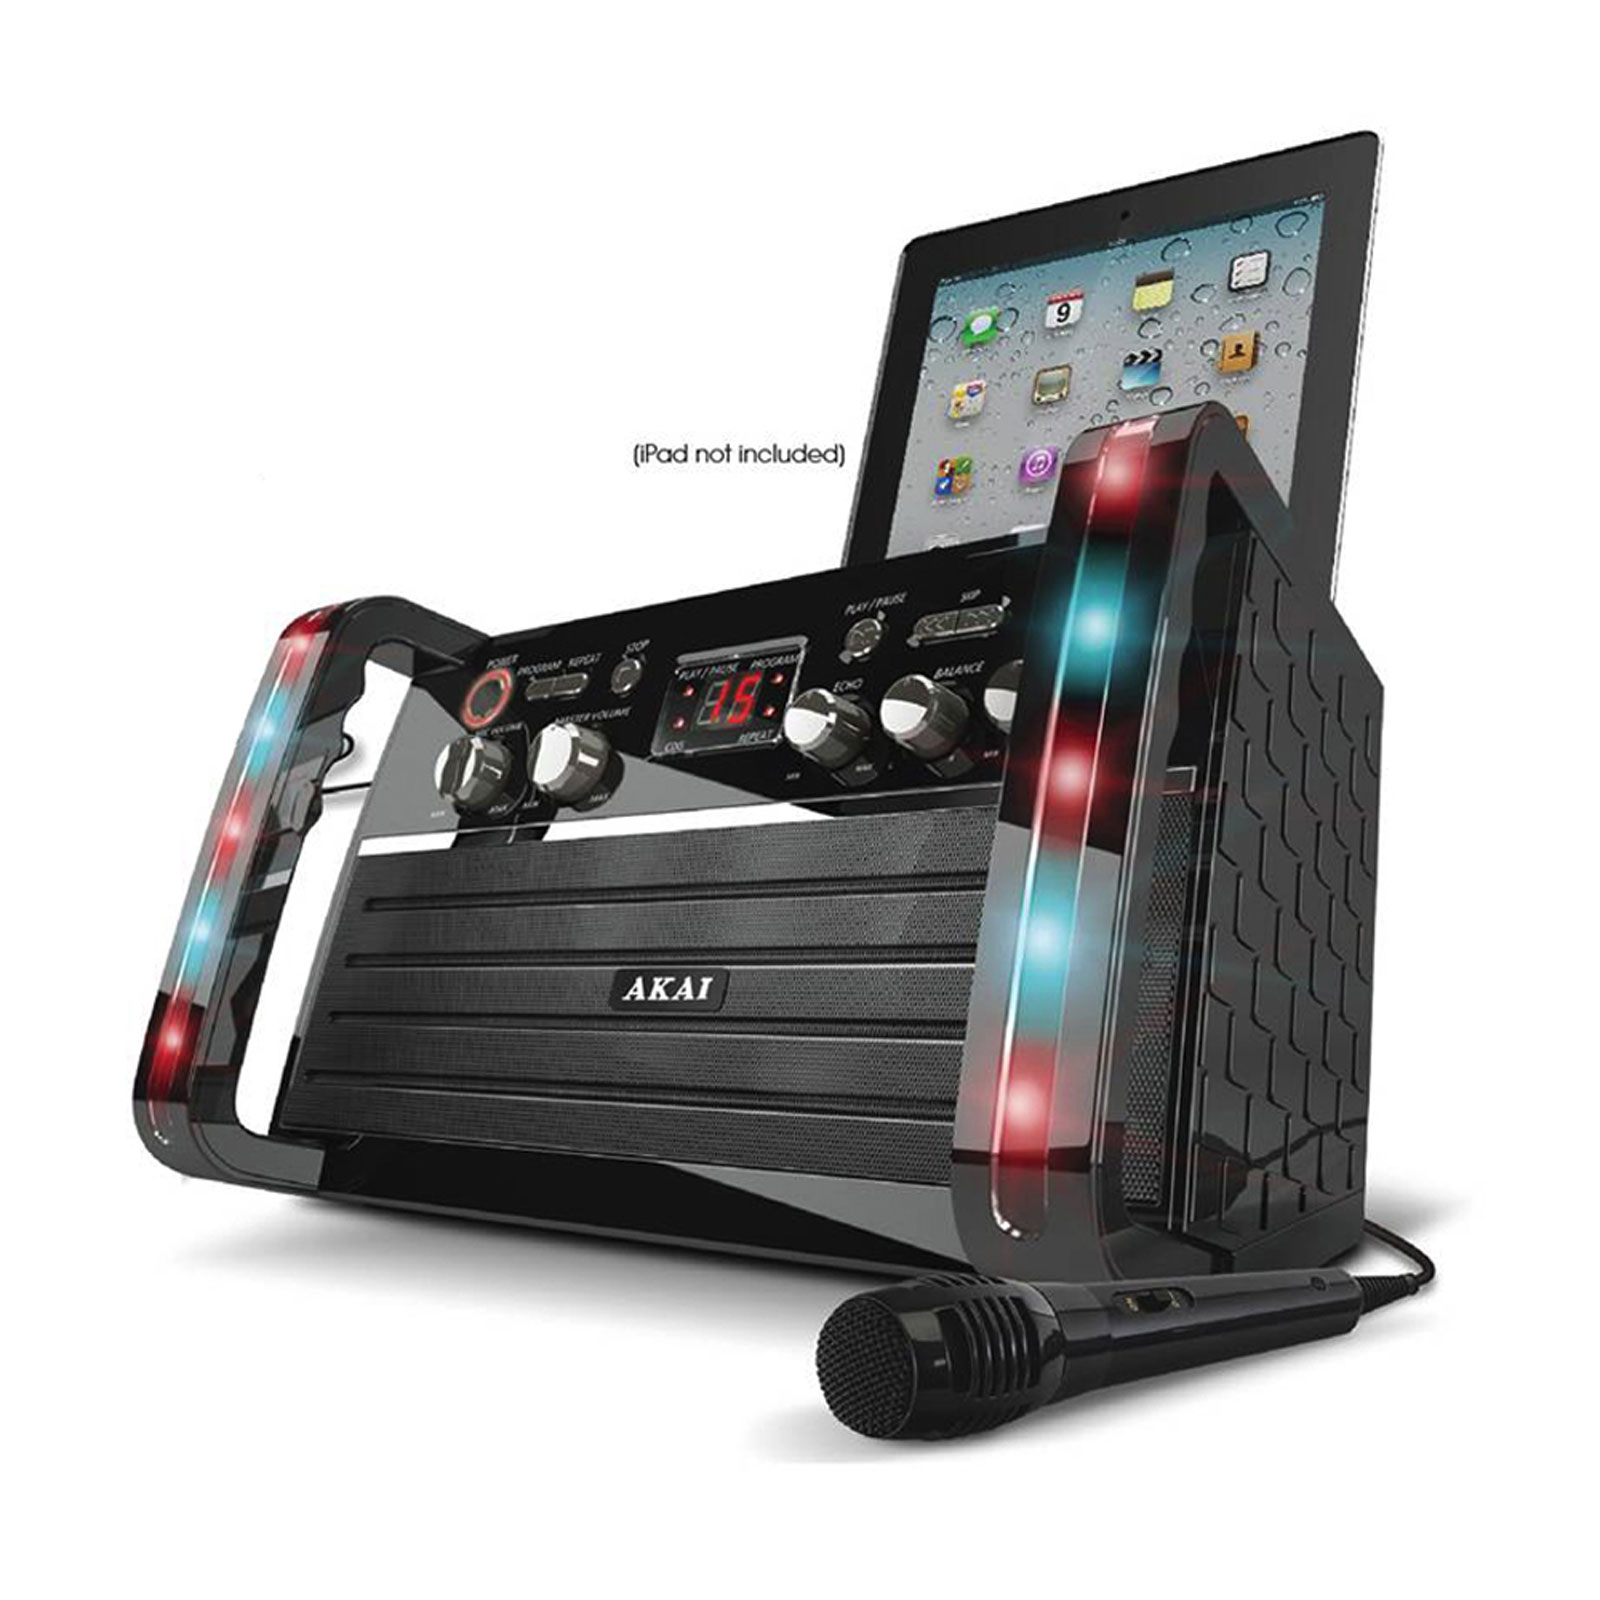 Akai CDG Portable Karaoke System with iPad Cradle and Line Input by Supplier Generic